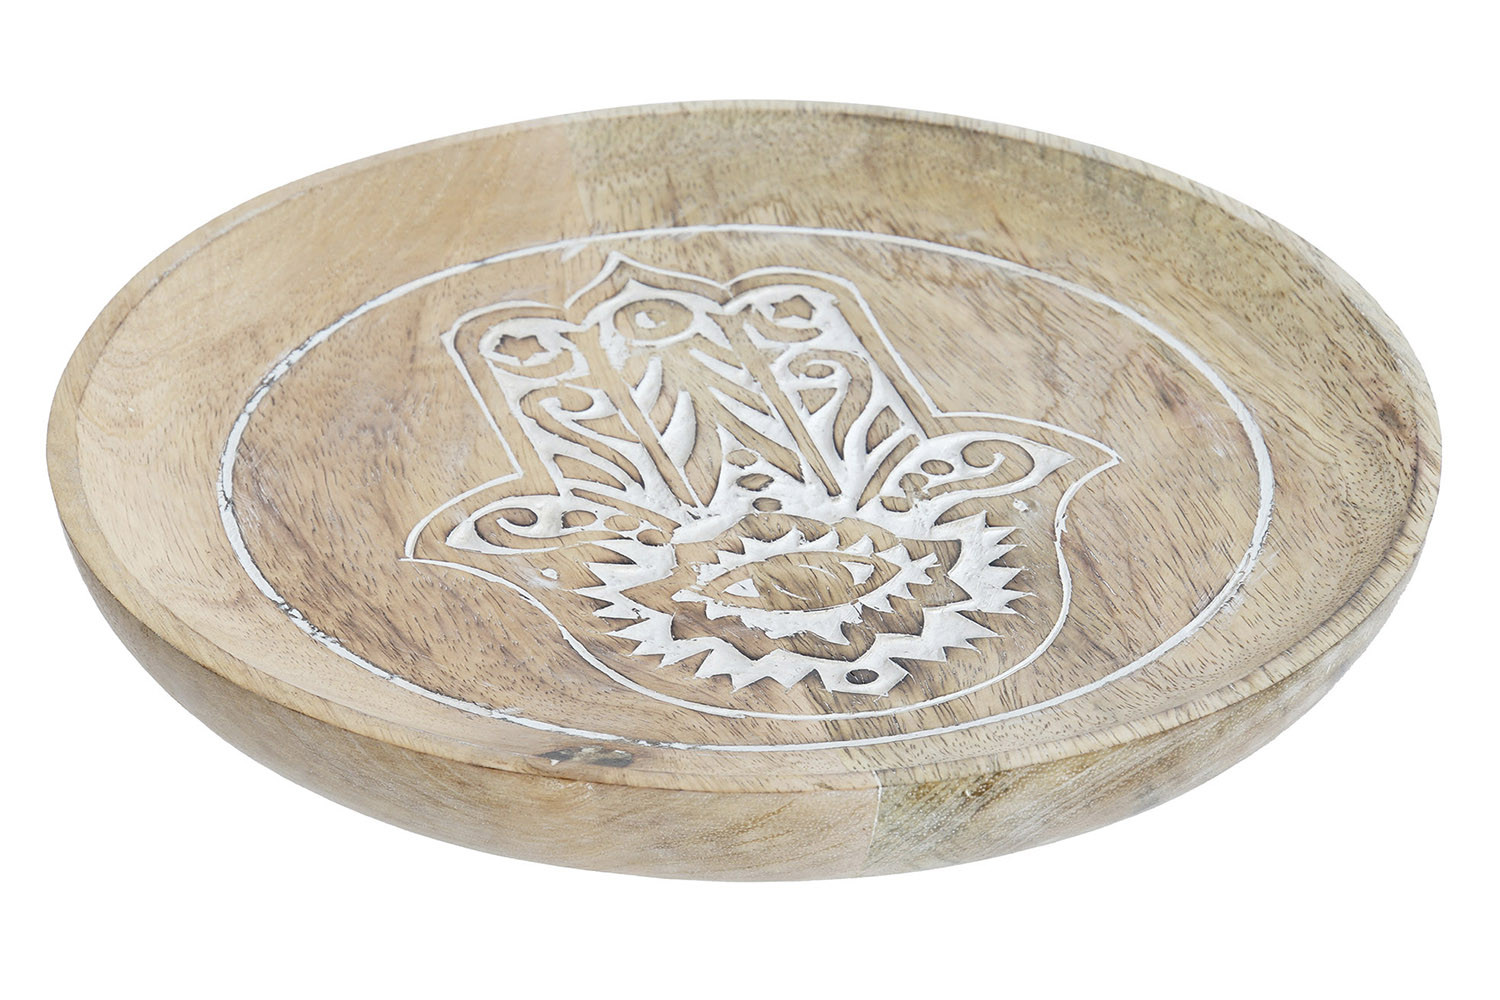 Tray Vaciabolsillos Wooden Handle with Scrape and Circular in Shape with Design Hand of Fatima, 20,5x20,5x2,5 -Home and More